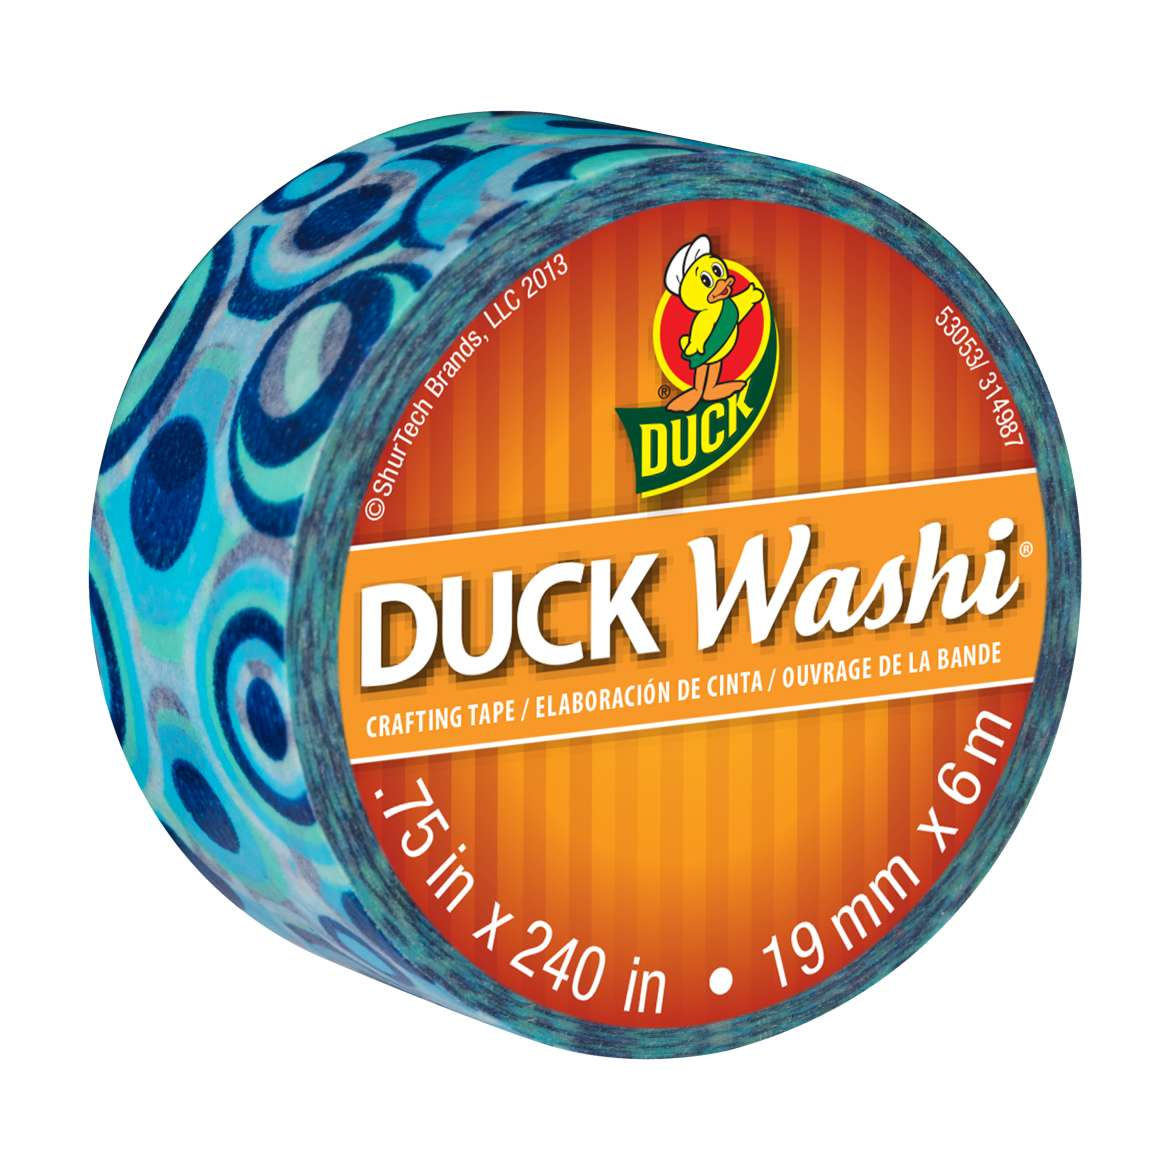 Duck Washi® Crafting Tape - Blue Mod, .75 in. x 240 in. Image